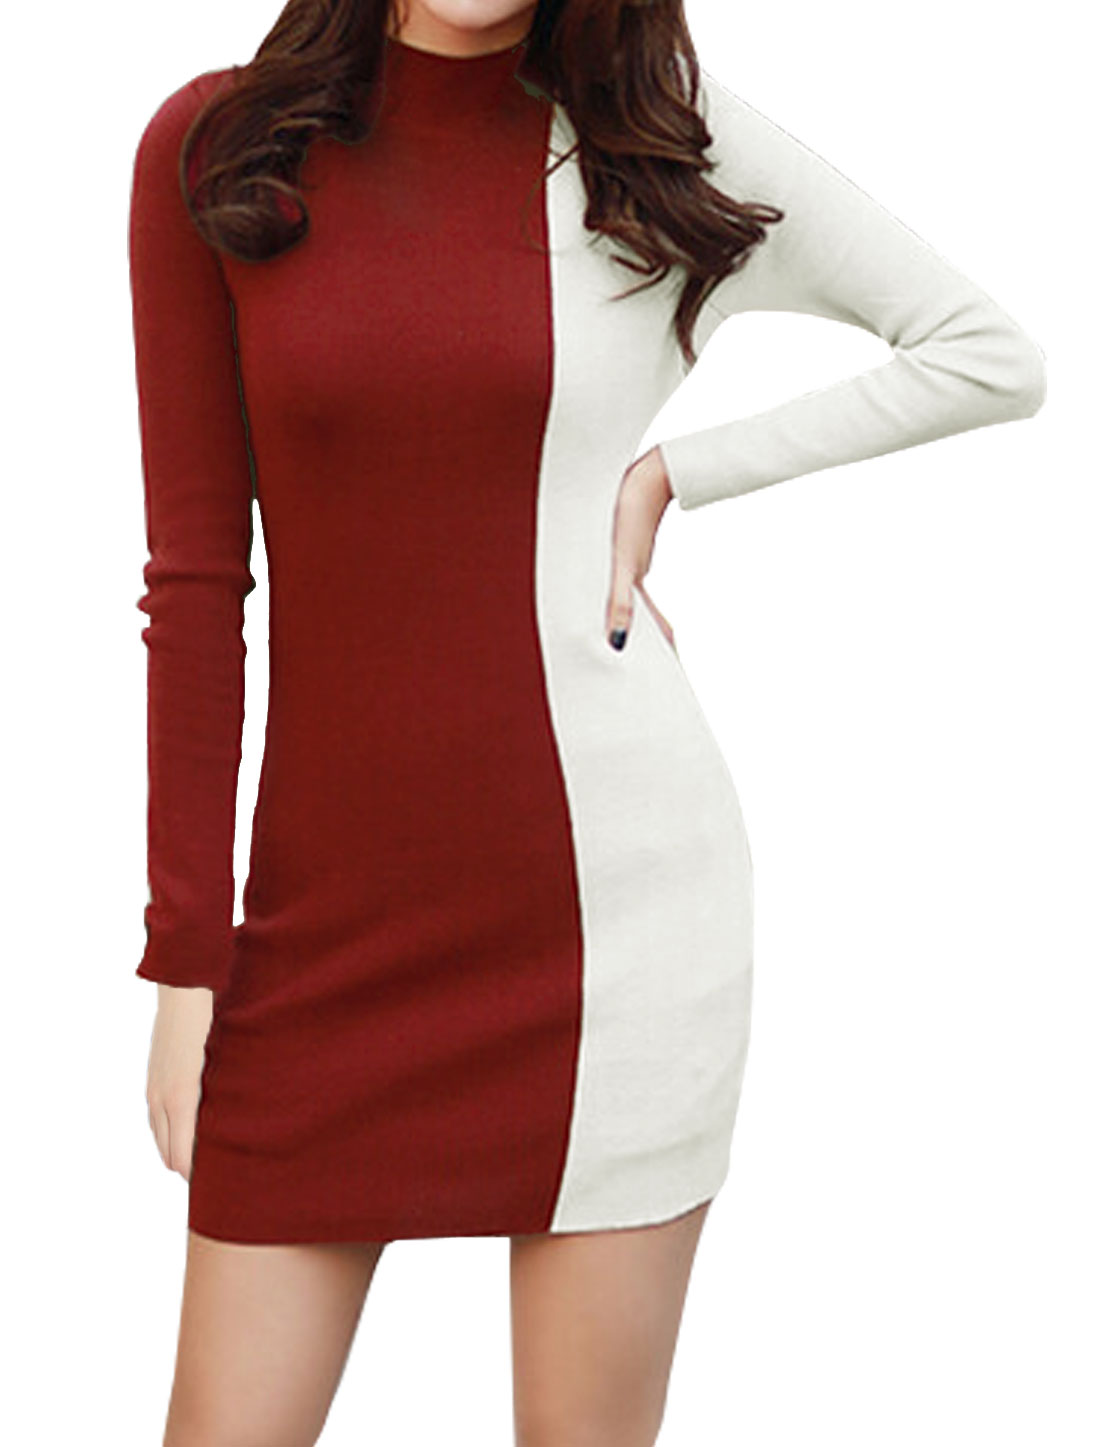 Women Mock Neck Color Block Ribbed Mini Bodycon Dress Red M